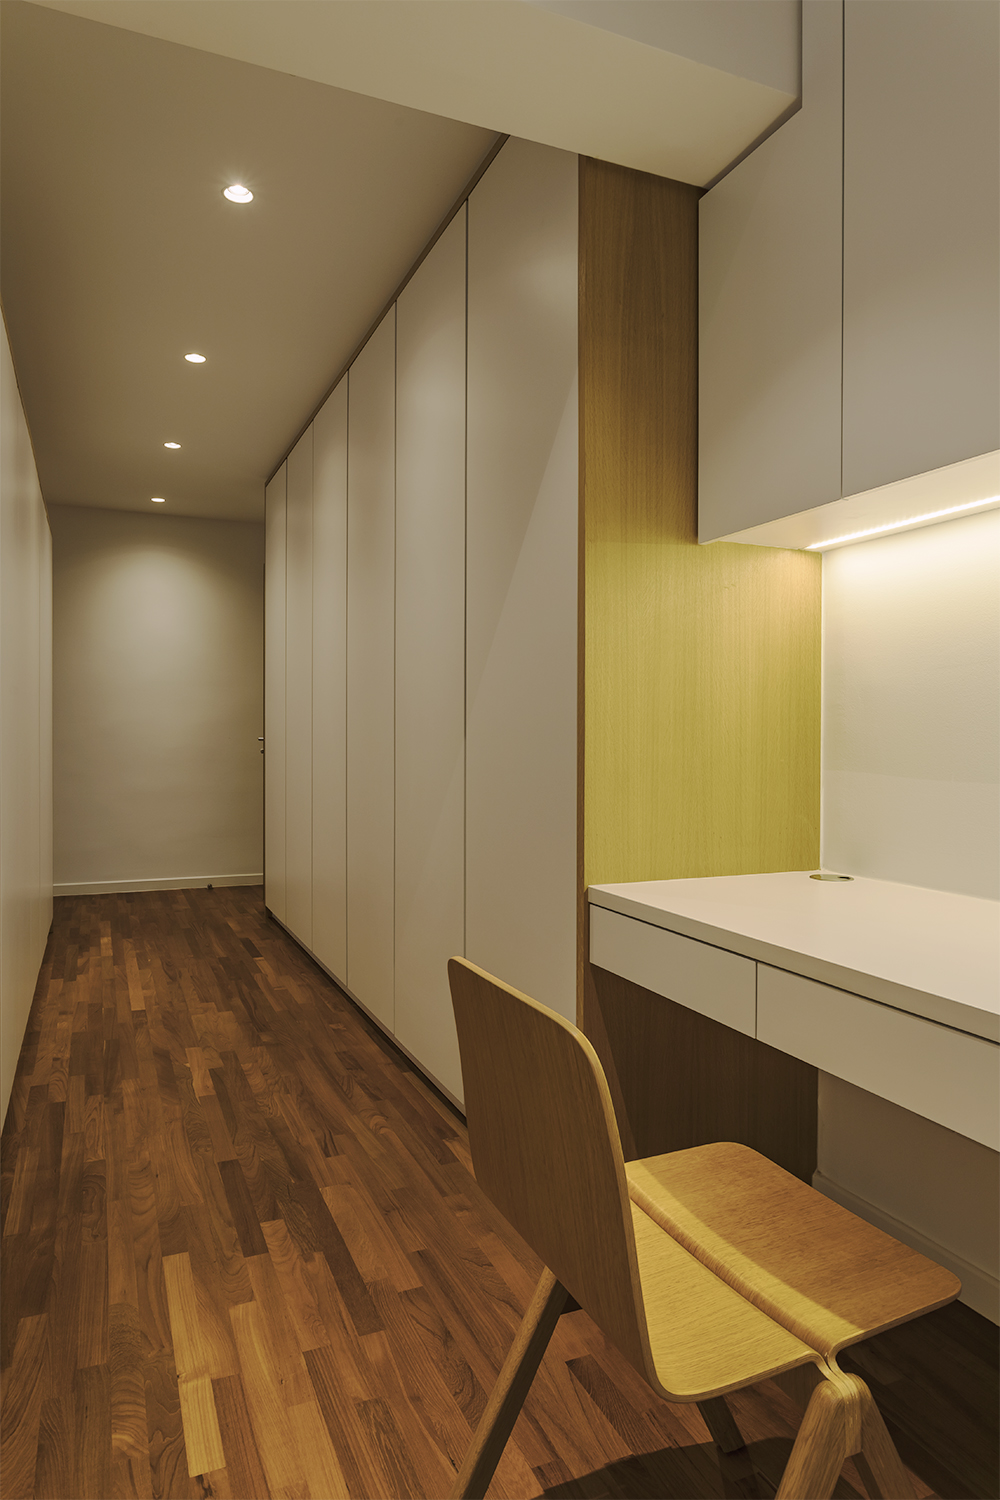 Master study space  and walk in wardrobe Kitchen counter provides visual continuity to dining room at Pandan Valley Condominium